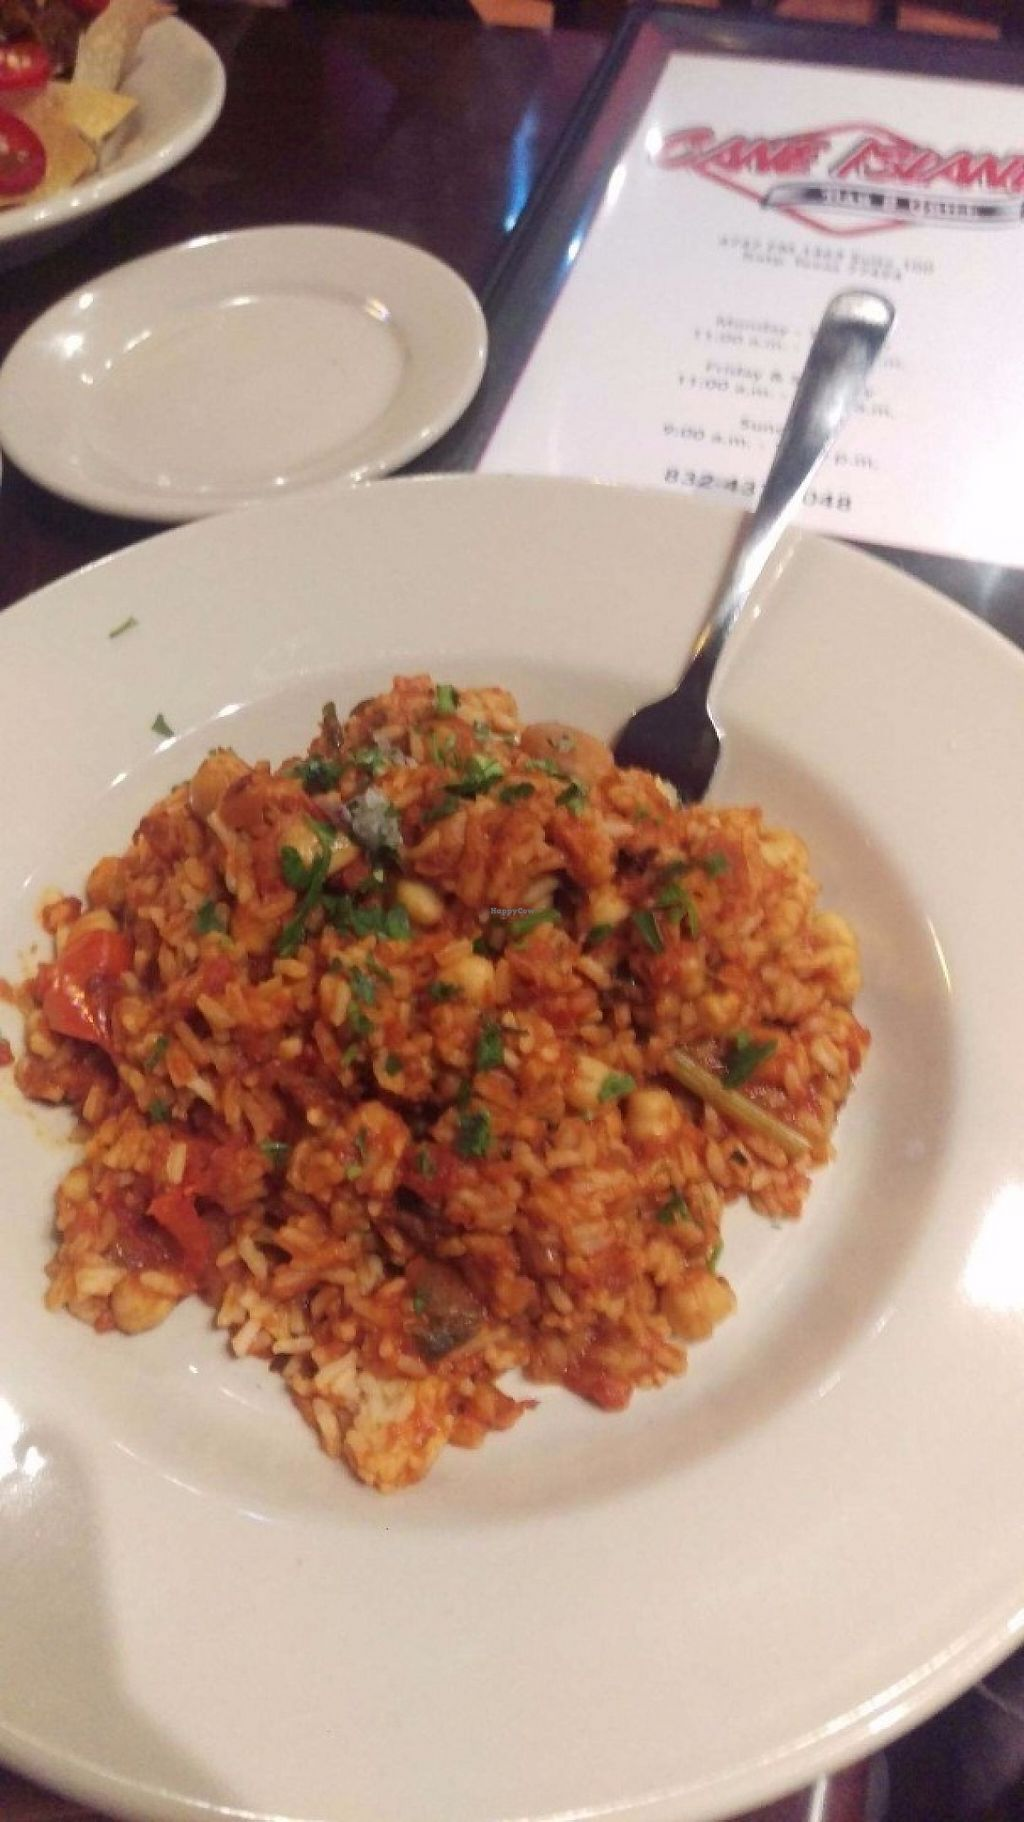 "Photo of Cane Island Bar & Grill  by <a href=""/members/profile/hrdial"">hrdial</a> <br/>Vegan jambalaya <br/> May 20, 2017  - <a href='/contact/abuse/image/92534/260716'>Report</a>"